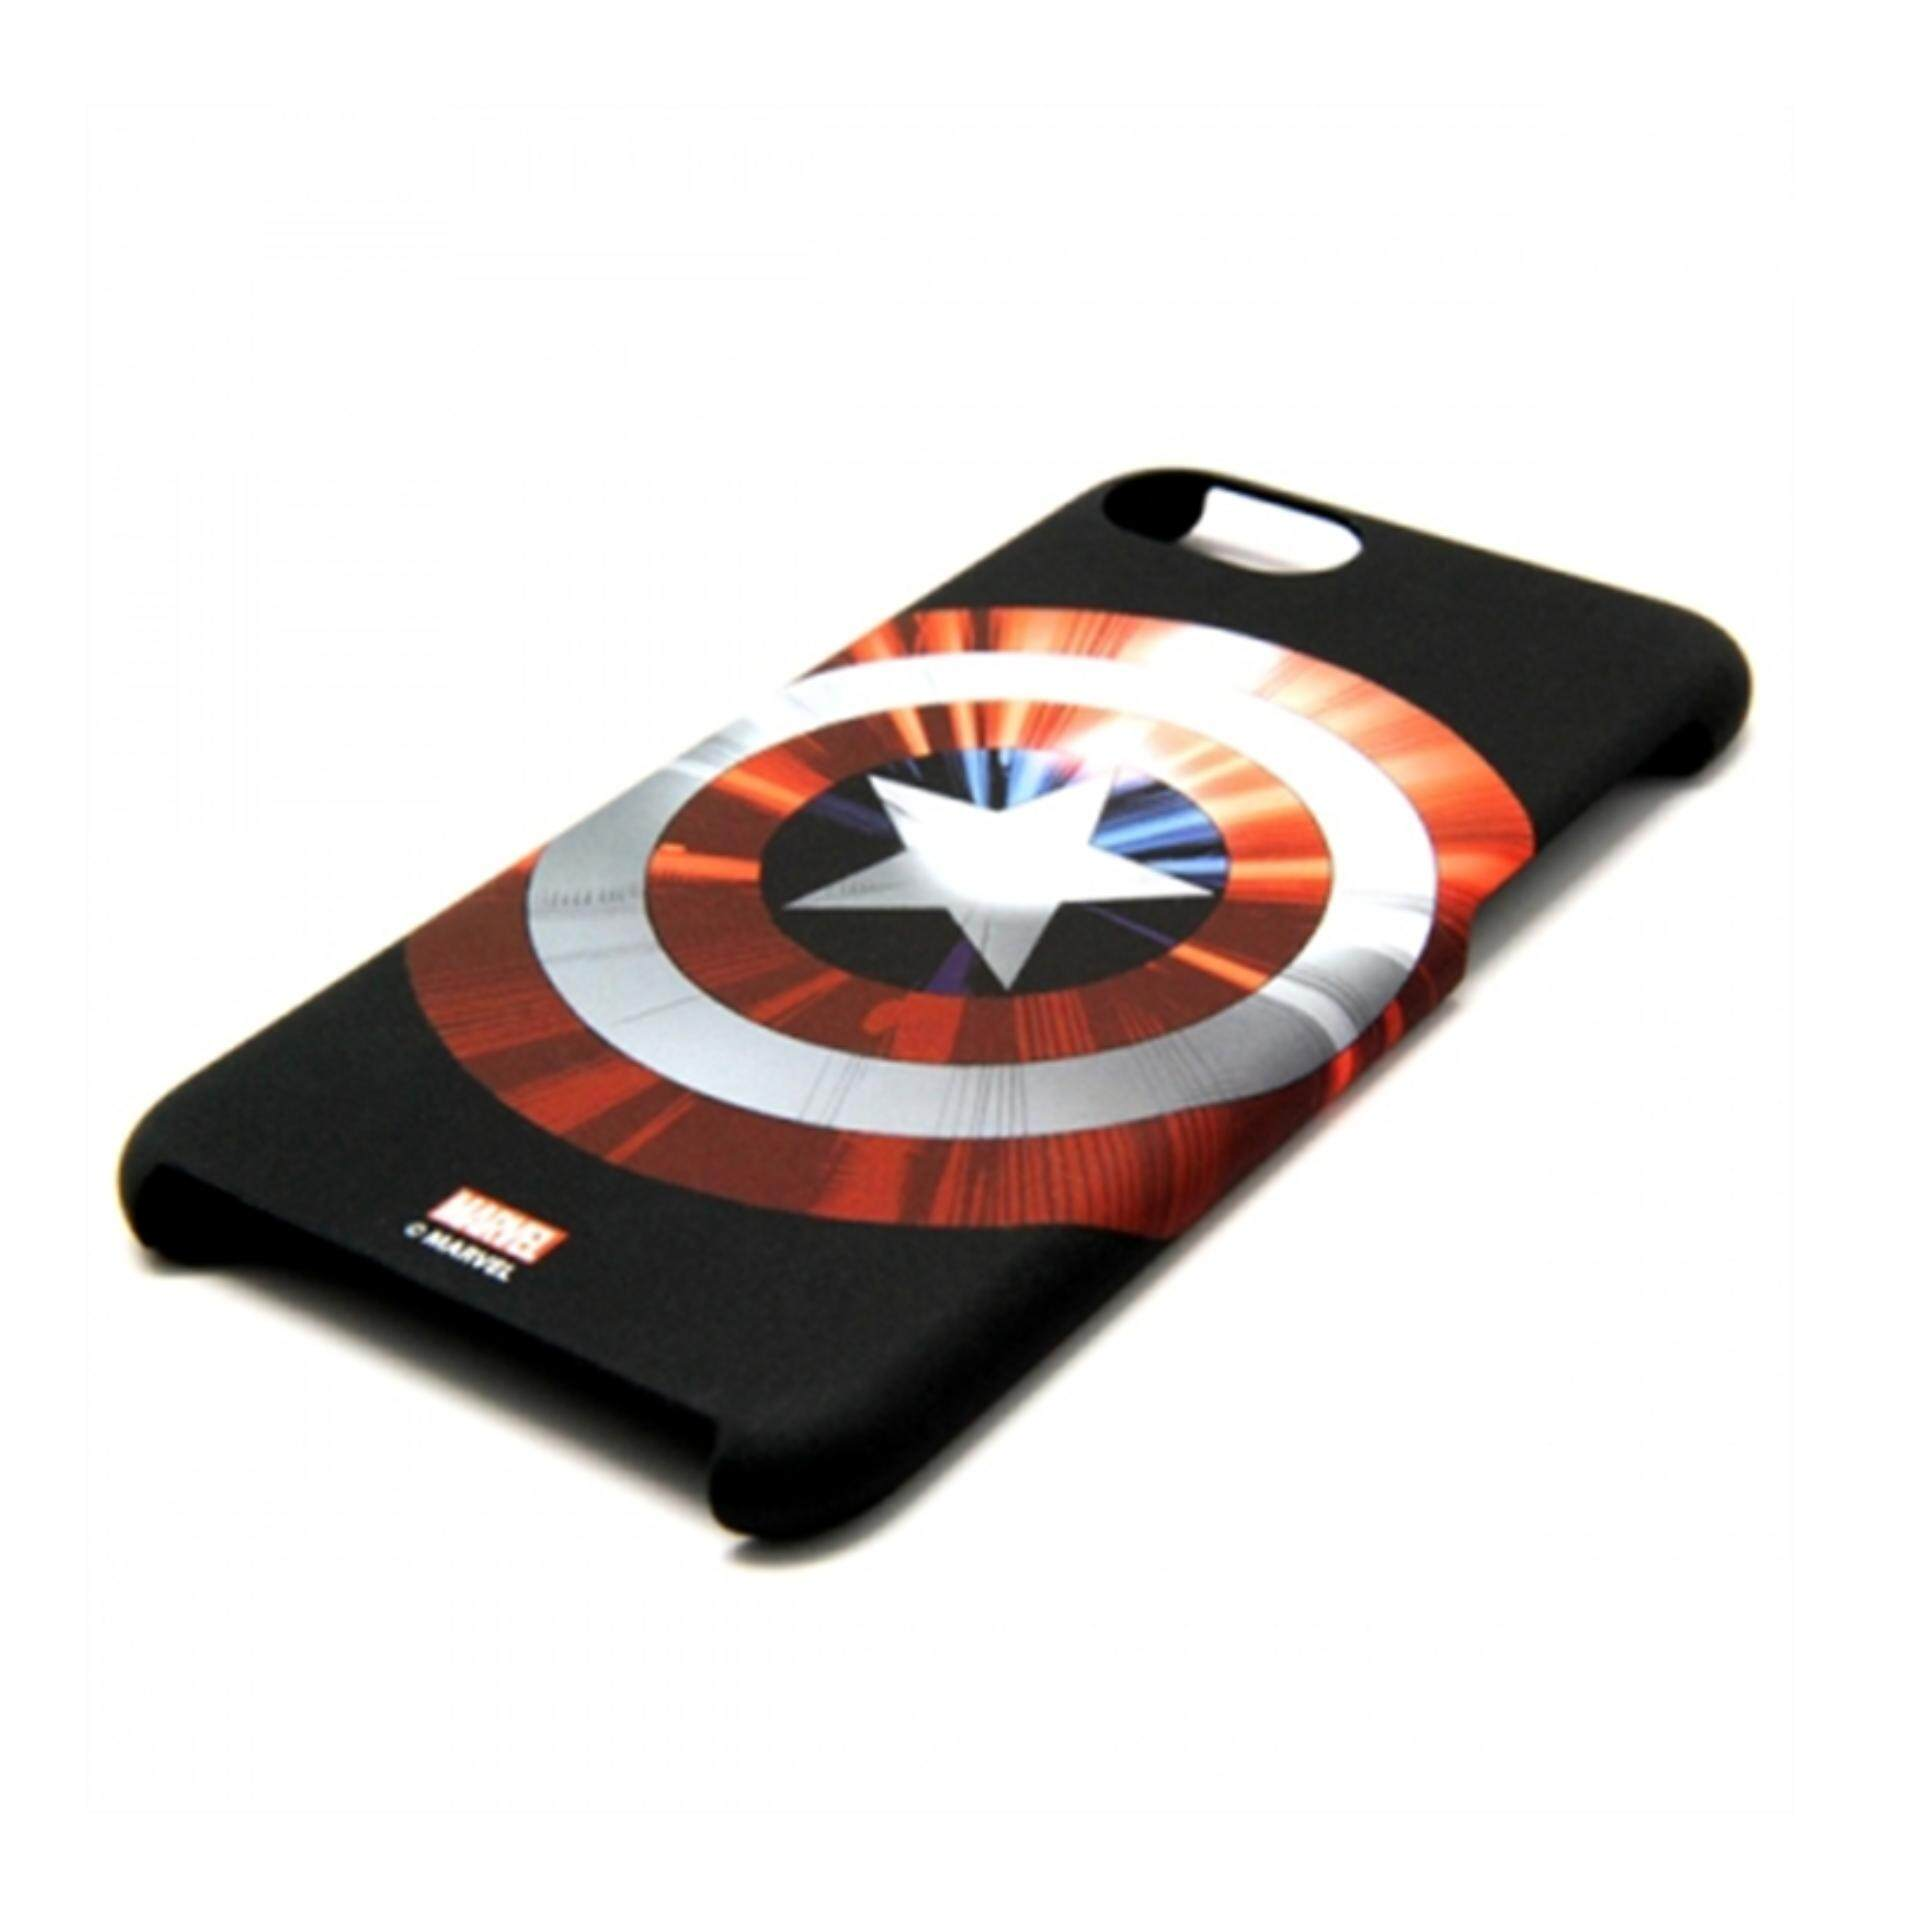 Marvel Avengers iPhone 7 Case 4.7 Inches - Captain America Shield